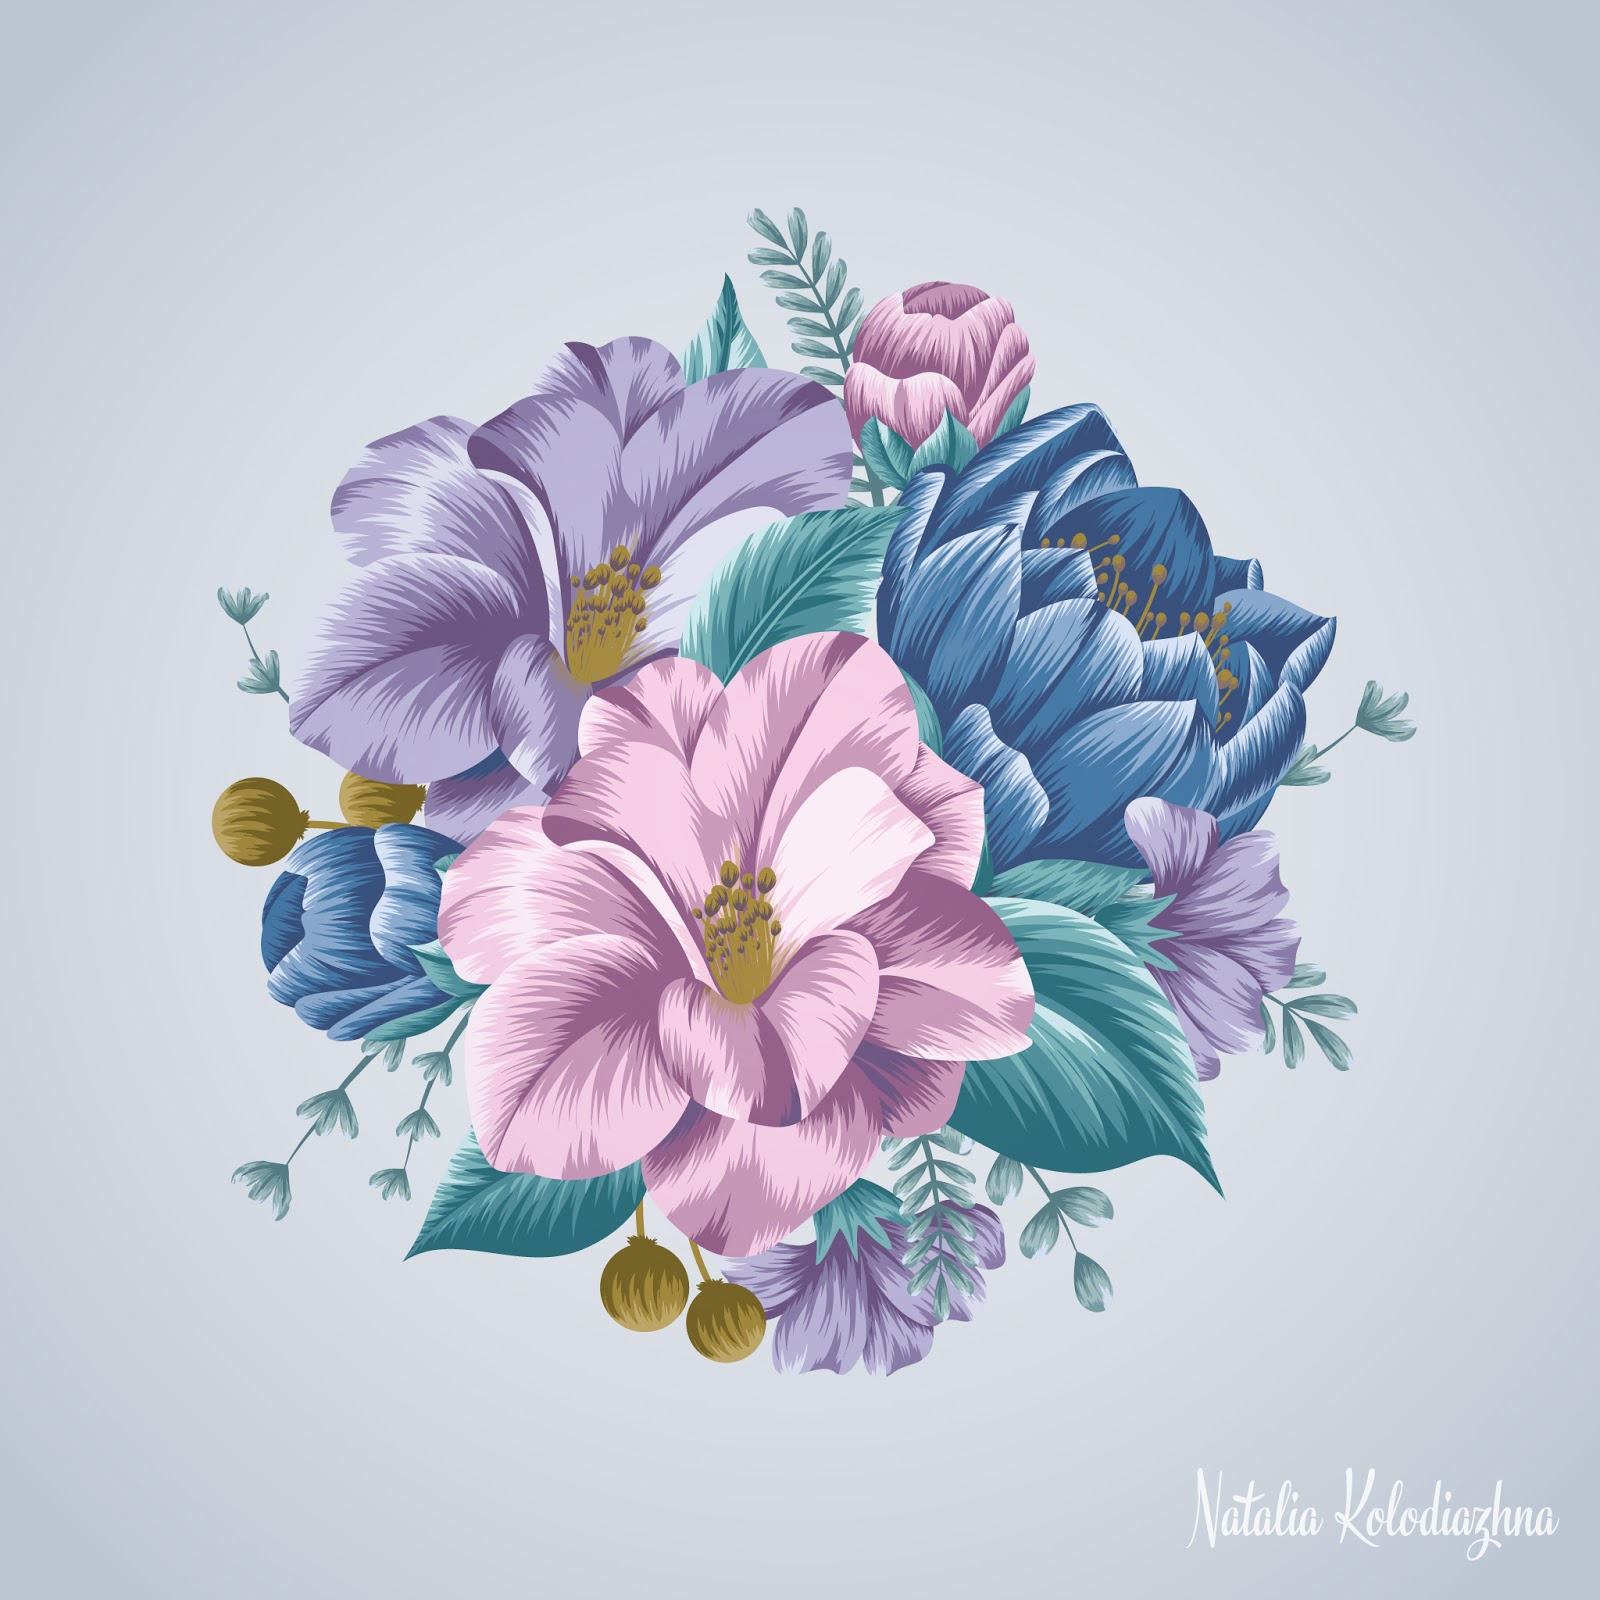 Gorgeous floral motif with camellia flowers by Natalia Kolodiazhna